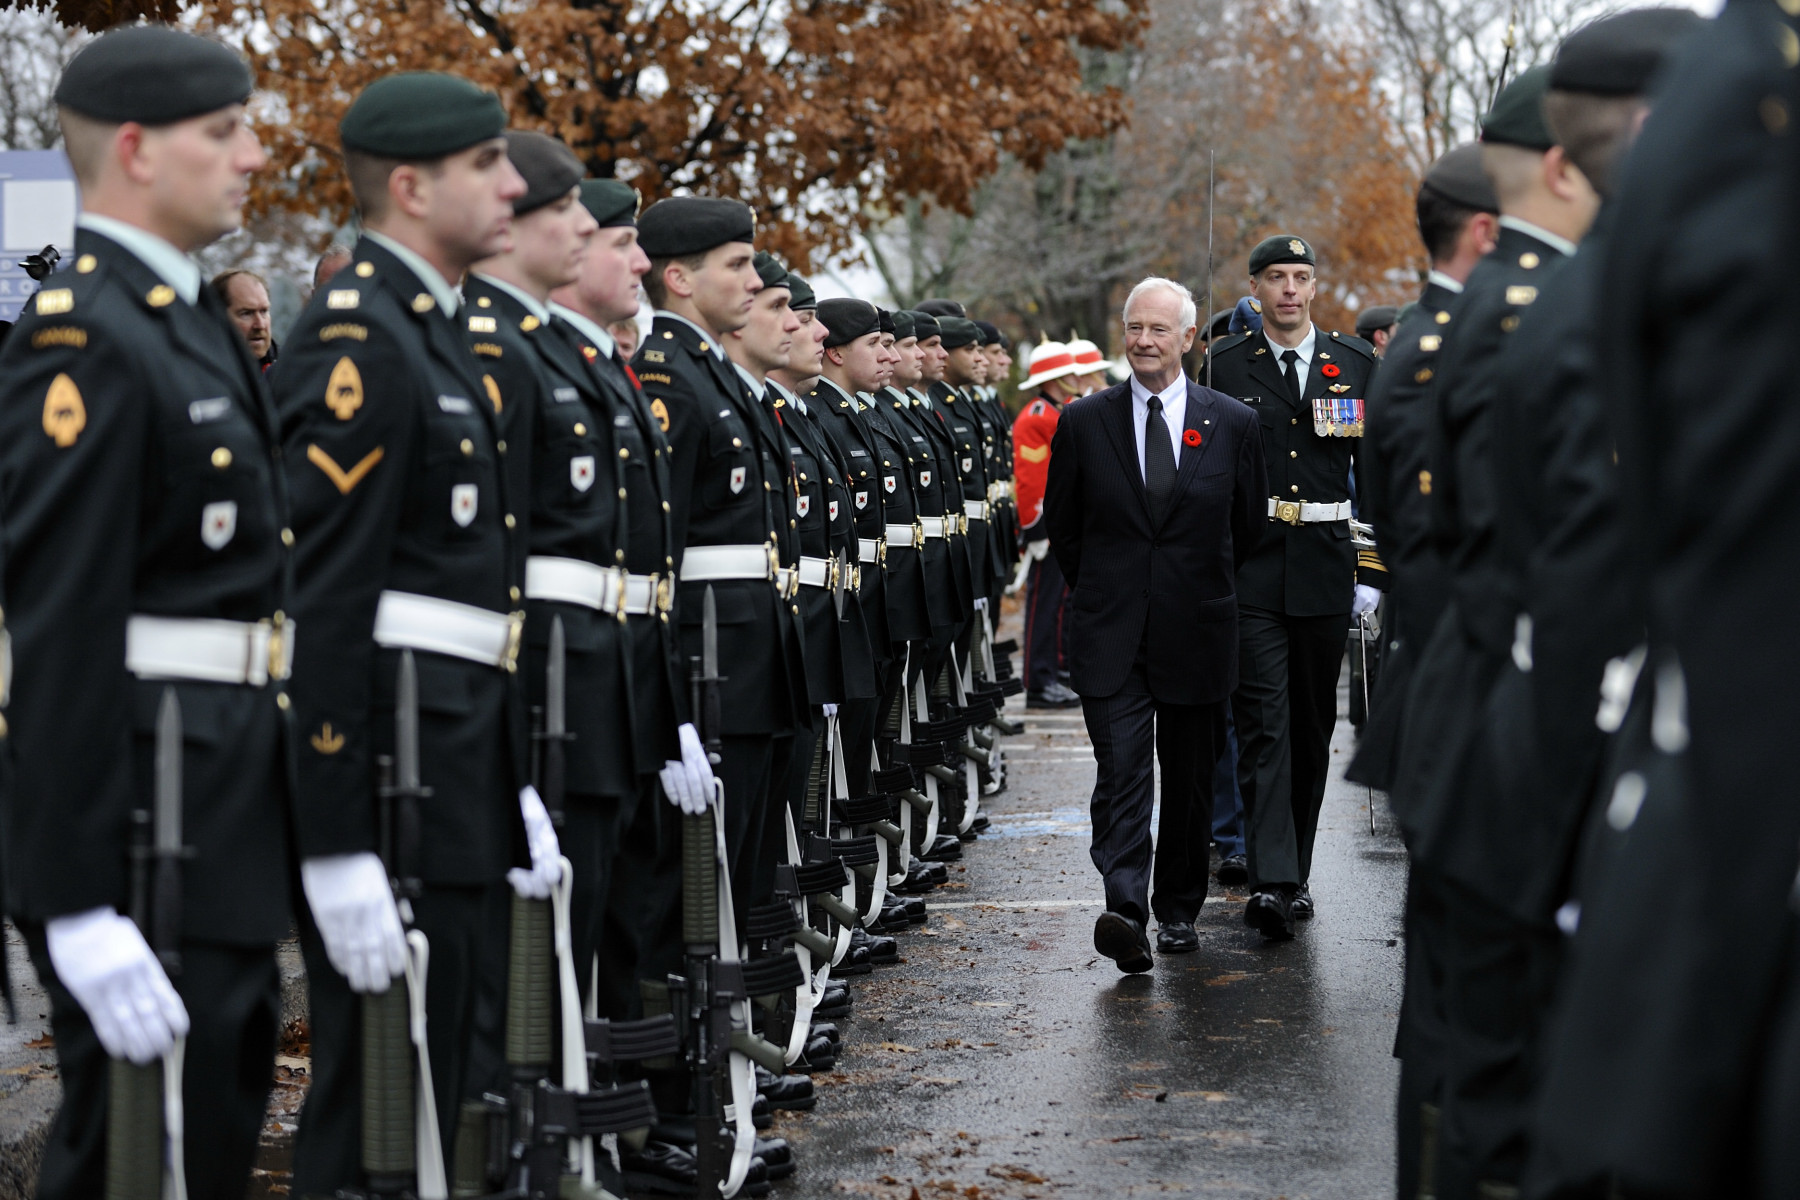 His Excellency also conducted the inspection of the guard of honour.